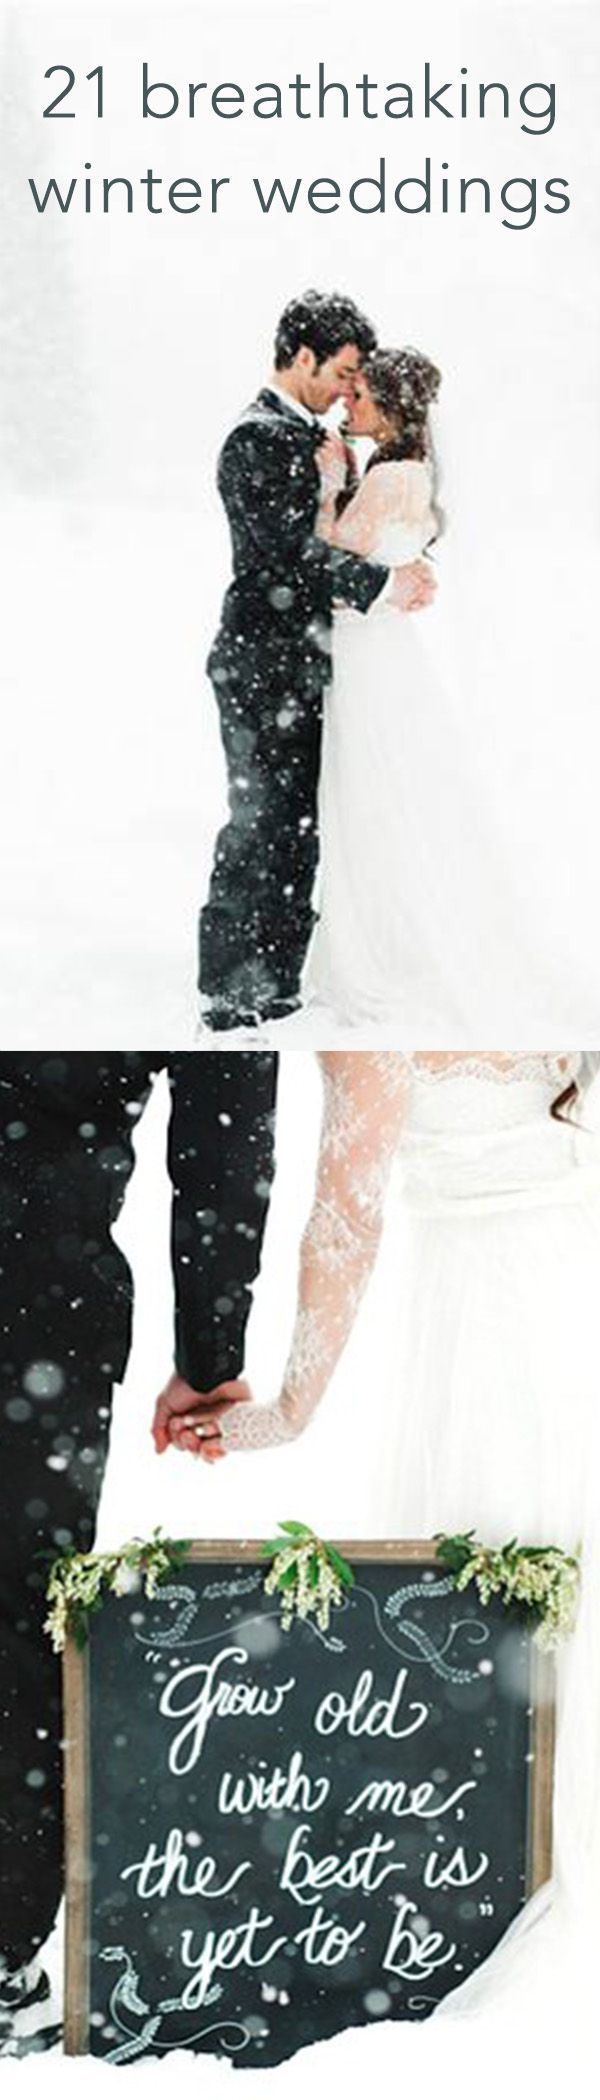 These photos prove that winter weddings can be gorgeous, despite subzero temps and snowy weather.